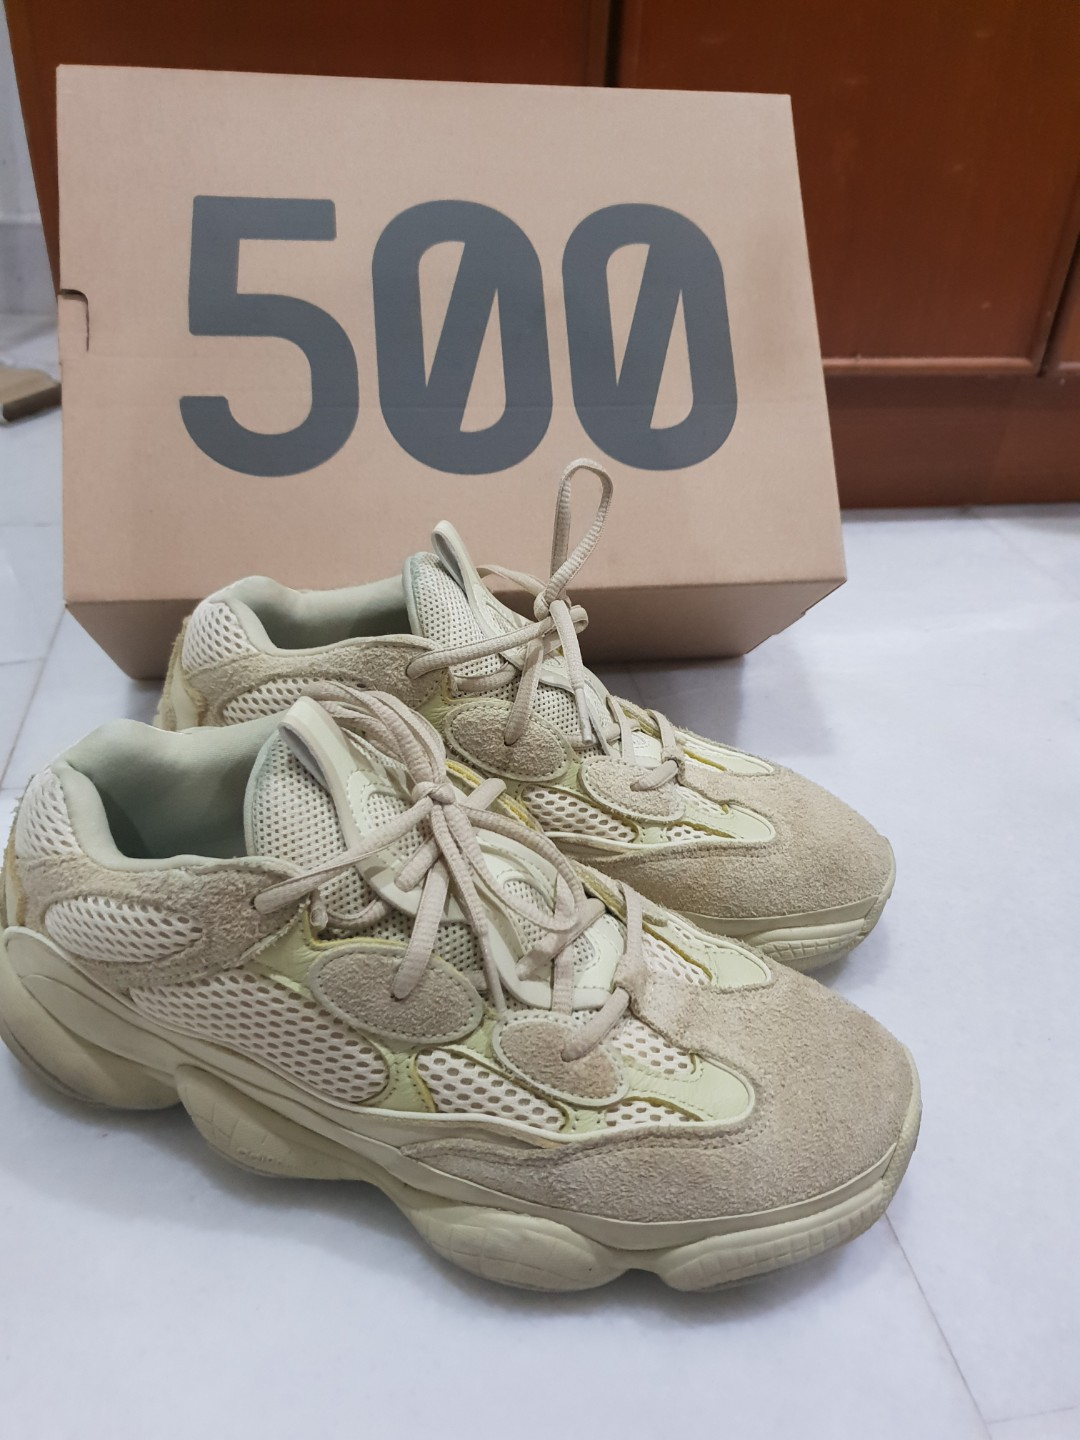 786904e9c2e1f Adidas yeezy 500 super moon yellow